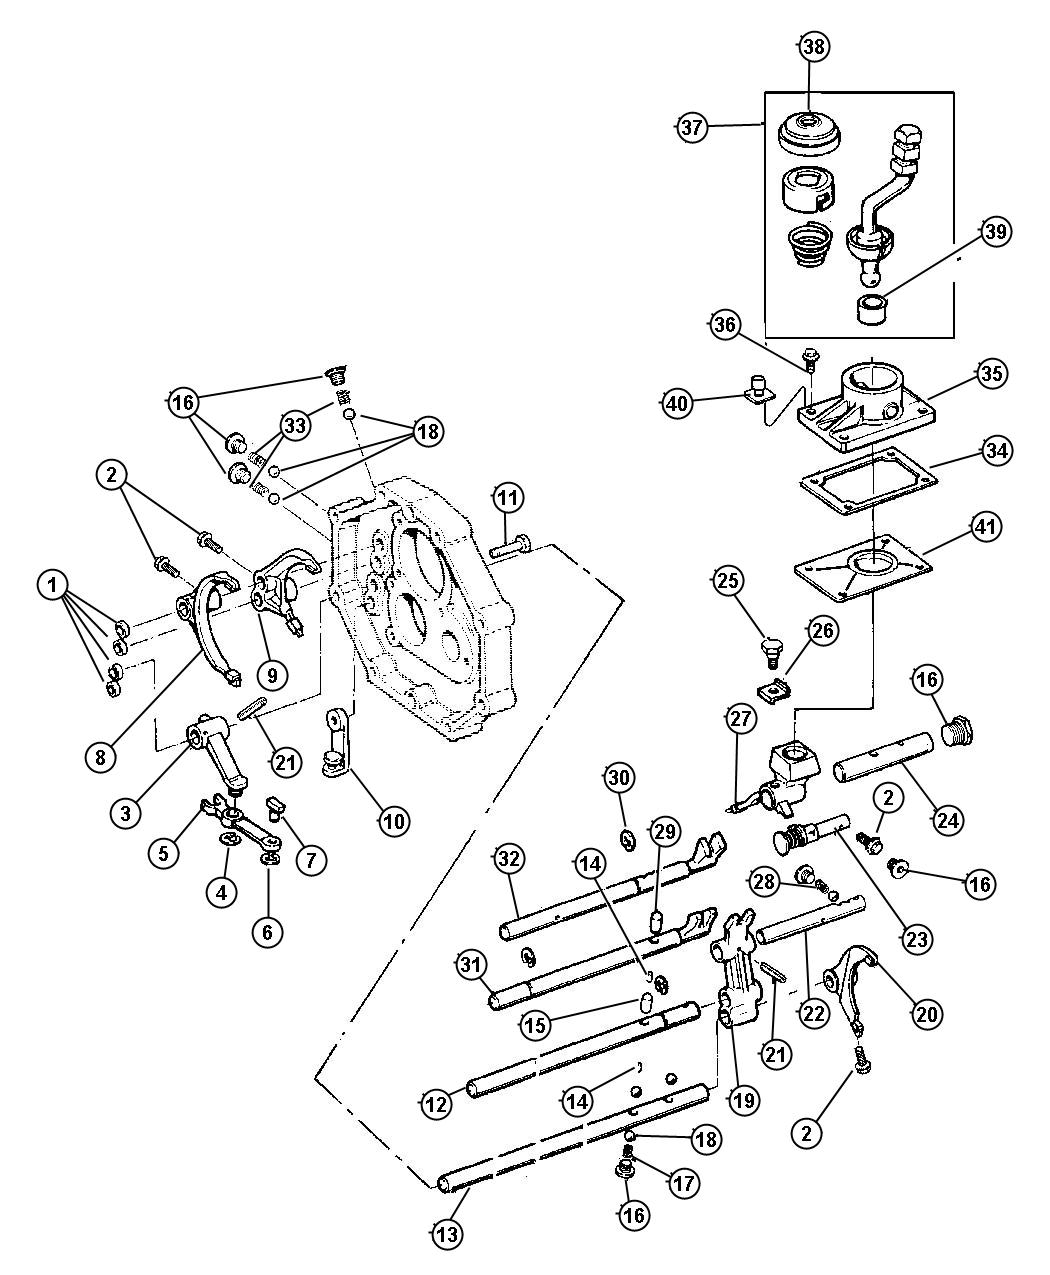 2001 Dodge Durango Fuse Box Diagram. Dodge. Wiring Diagram